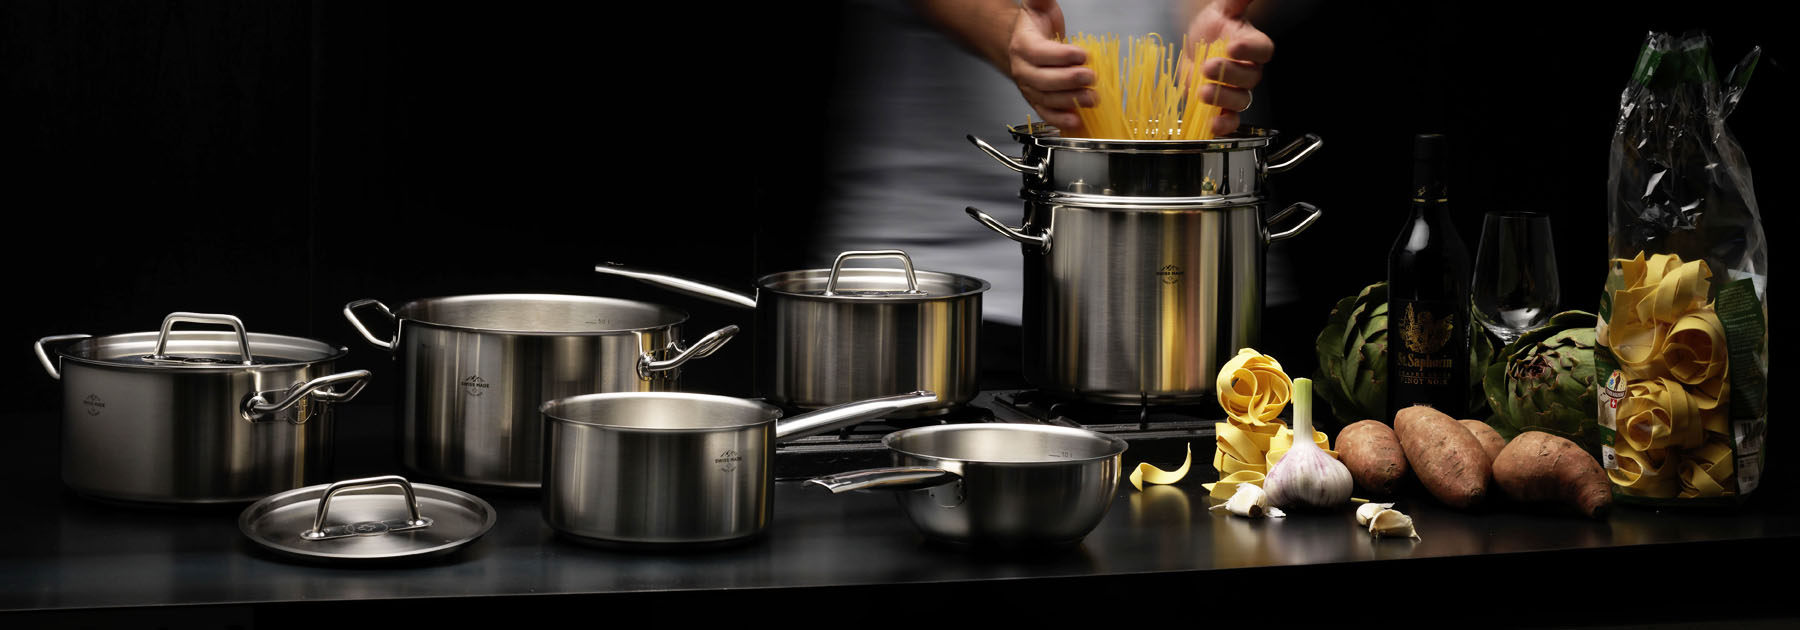 Stainless Steel Moontreux Cookware